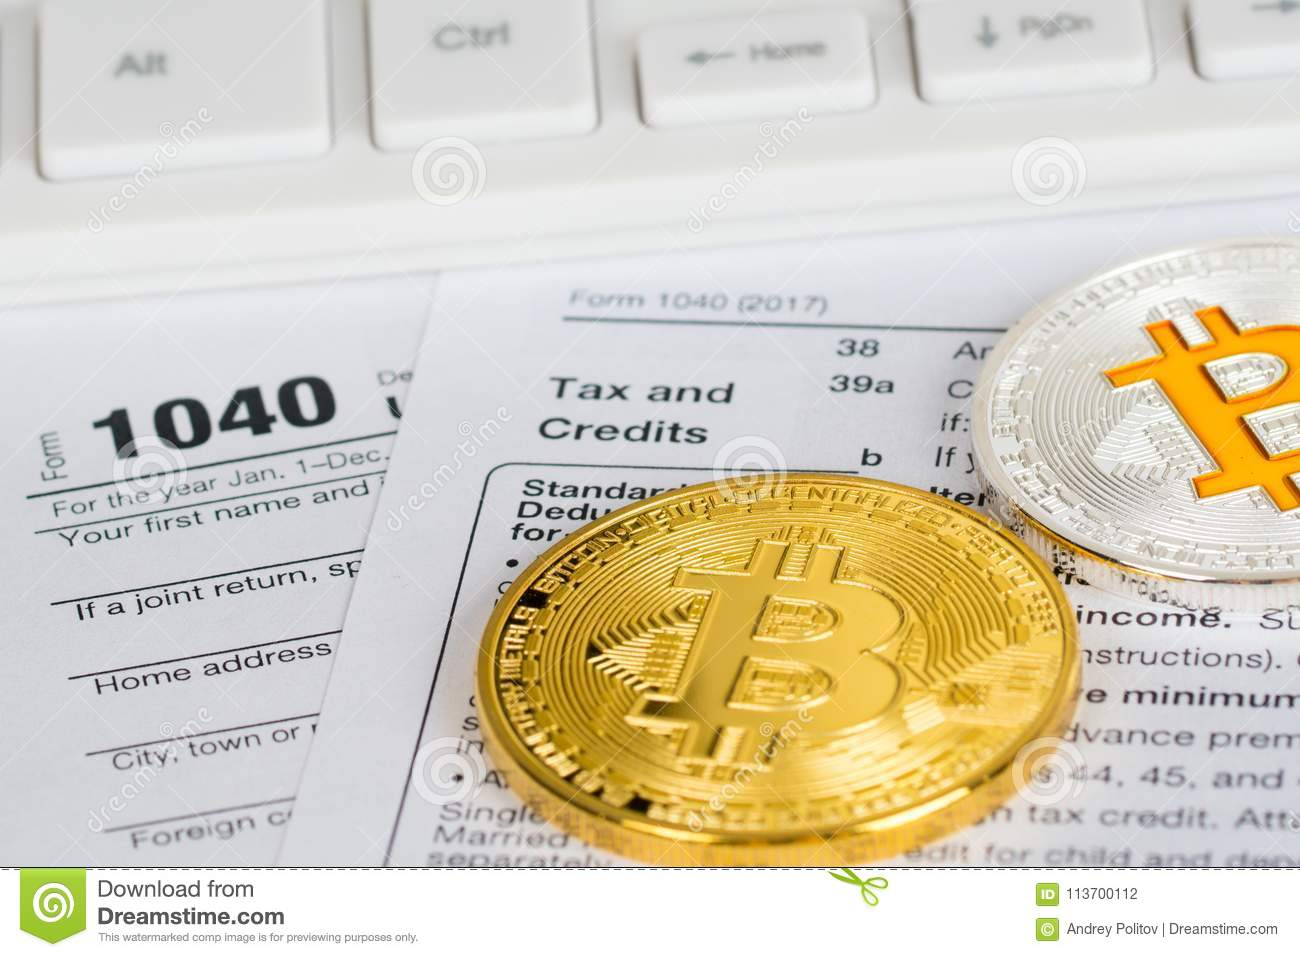 Tax return form 1040 with bitcoin and litecoin